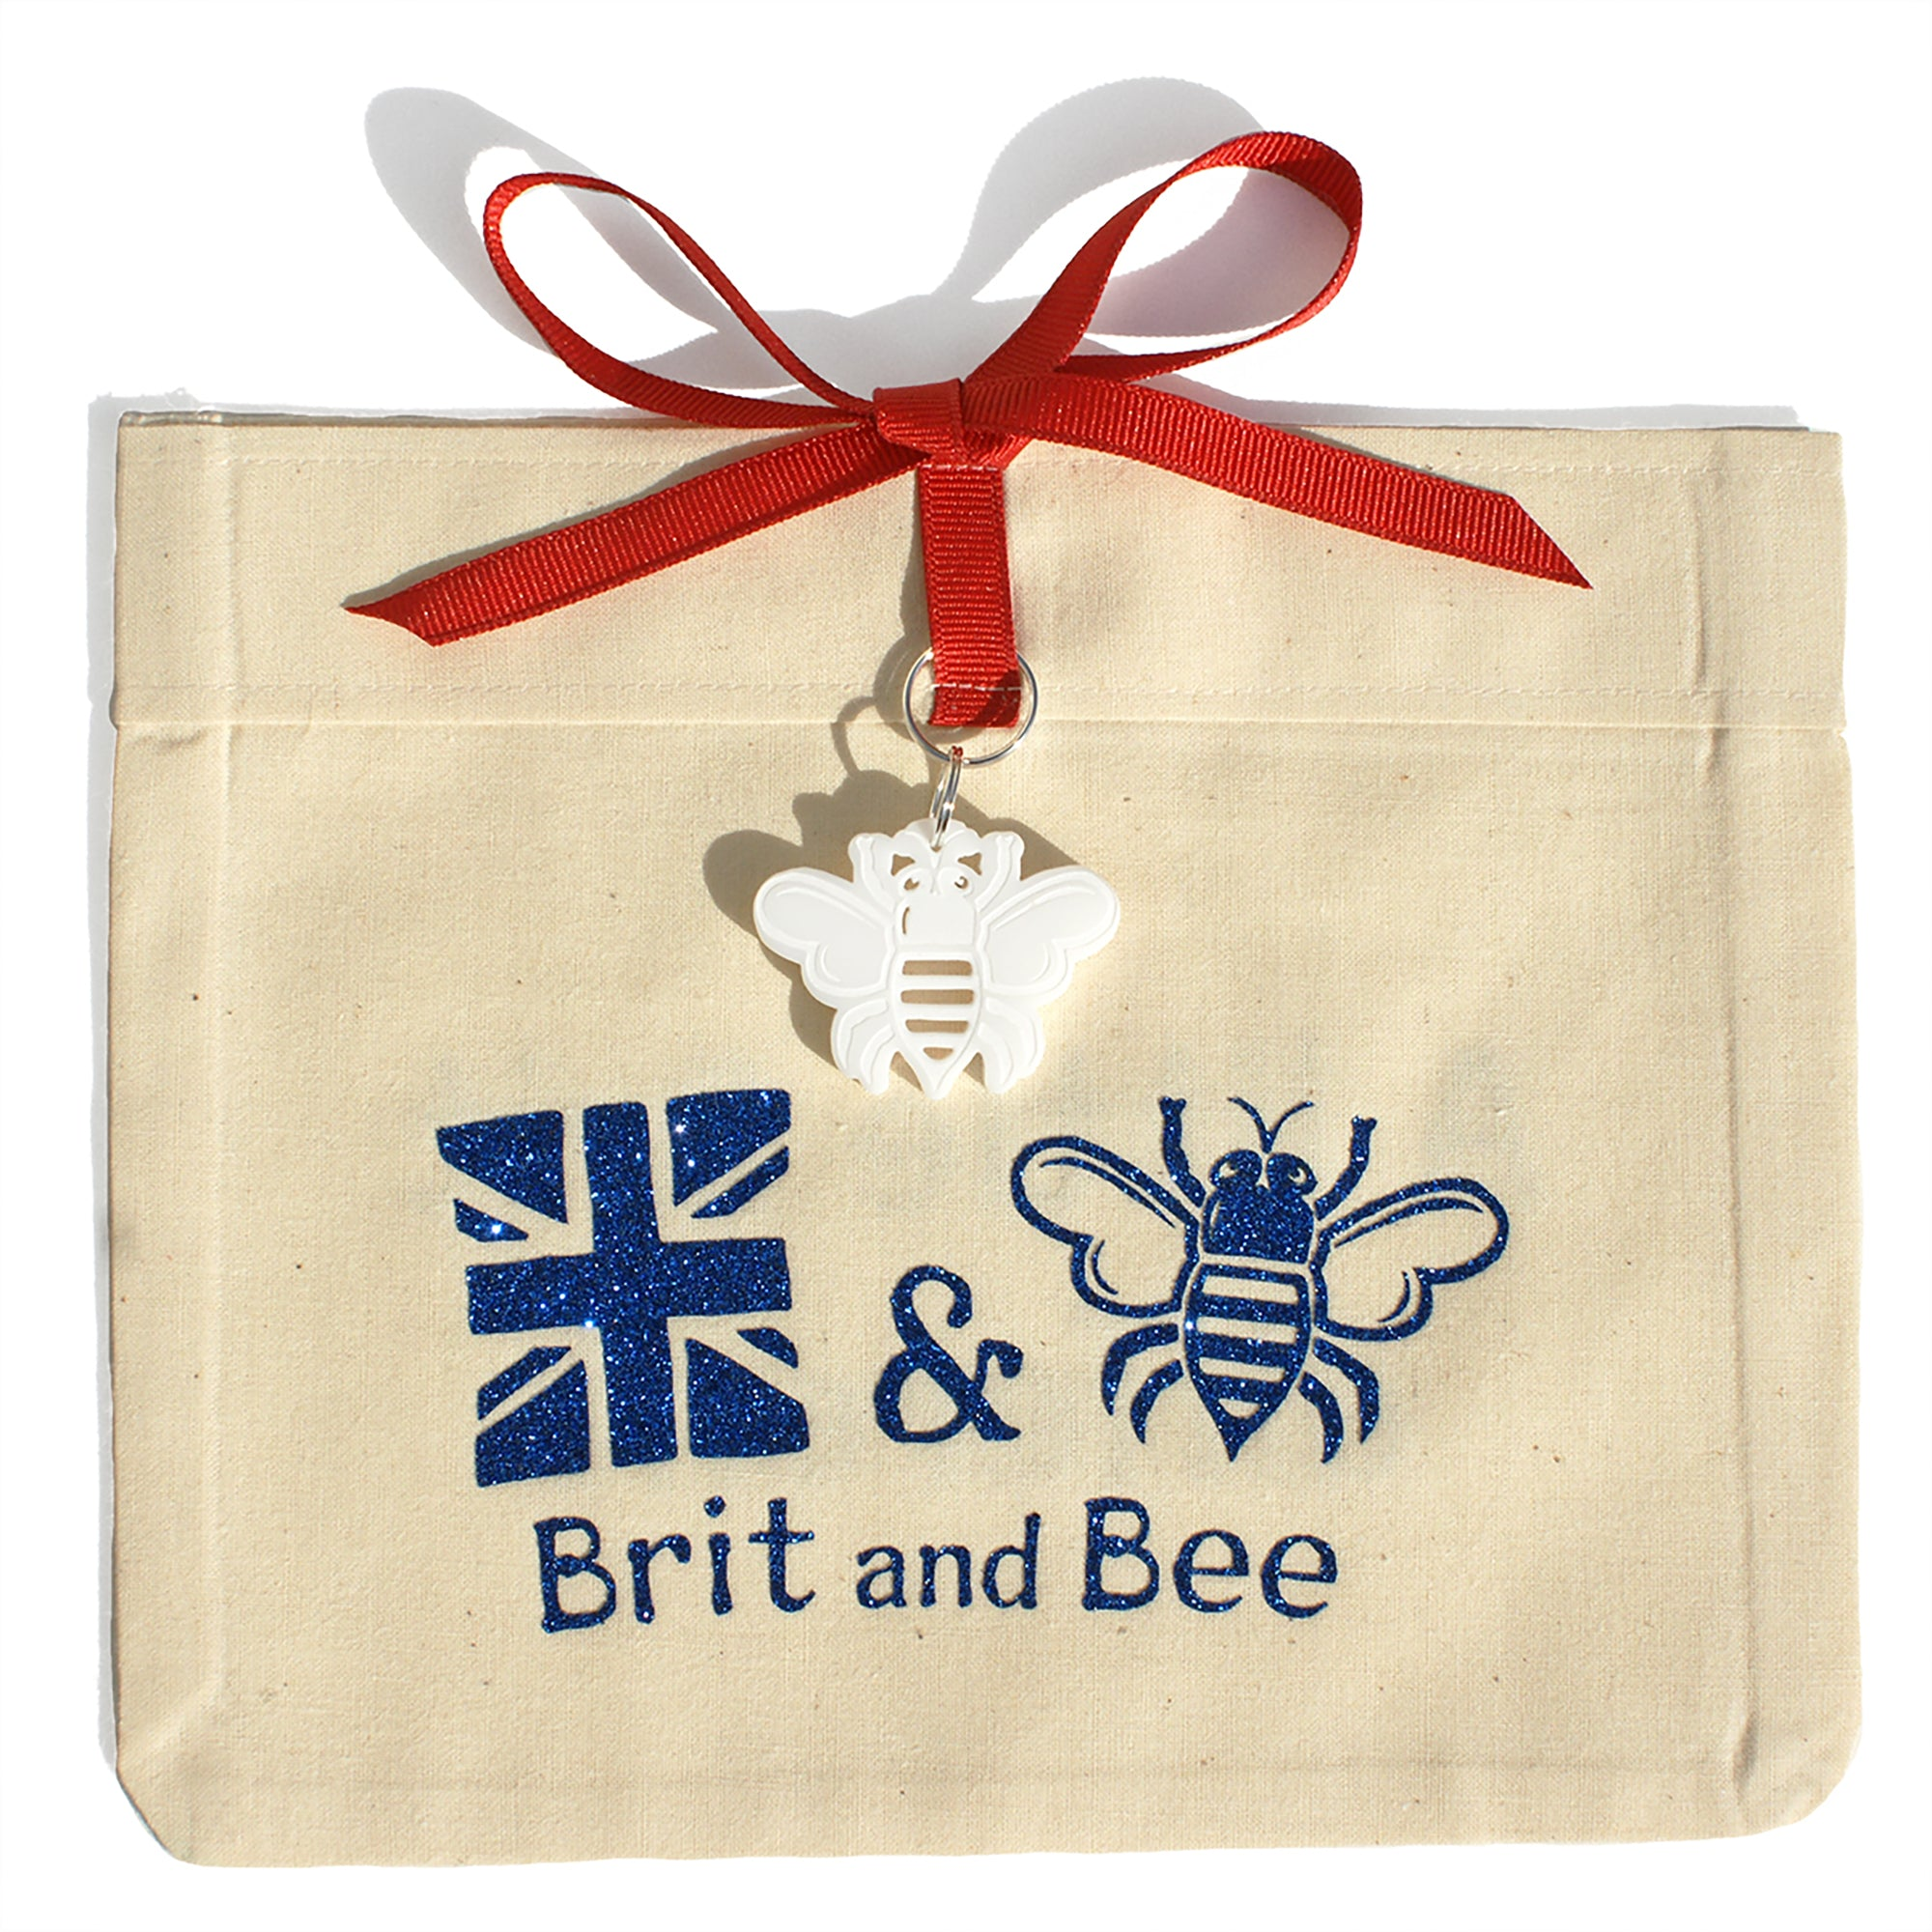 New American Citizen Ornament | Brit and Bee